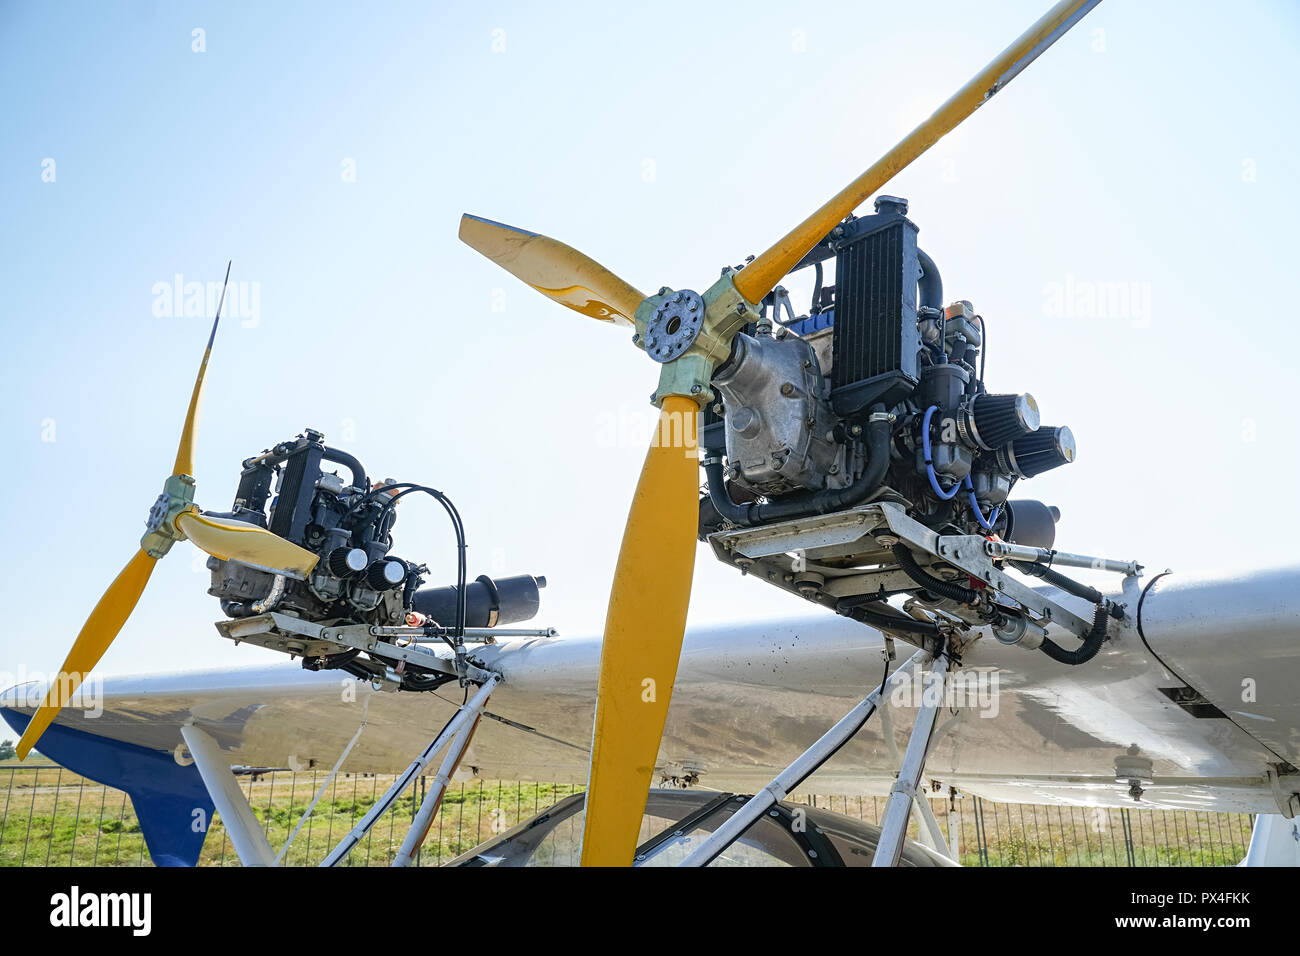 Light aircraft engines against a sky - Stock Image